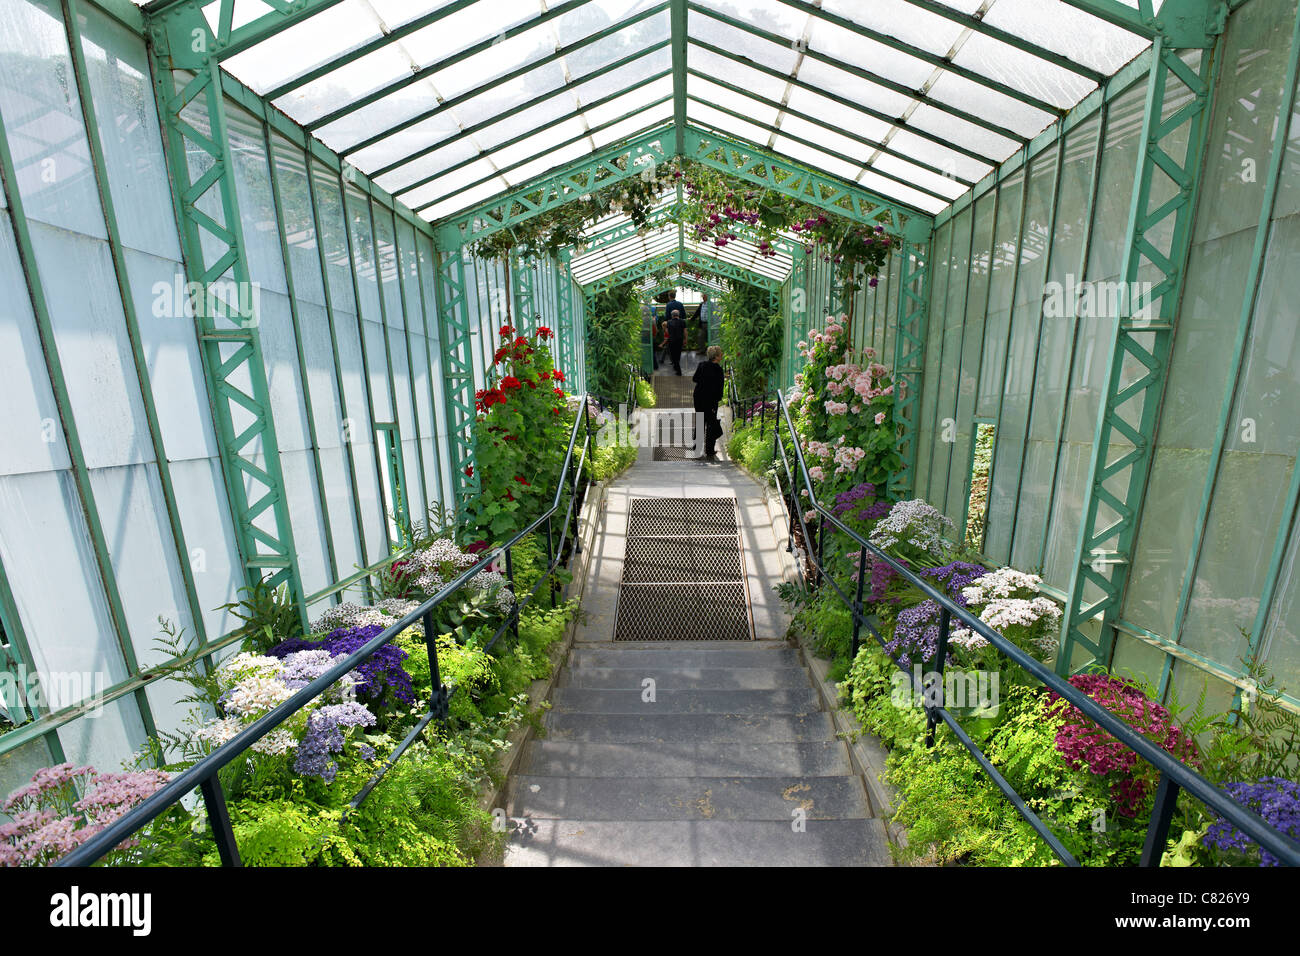 Royal Greenhouses of Laeken, Royal Castle of Laeken, Brussels, Belgium, Europe - Stock Image